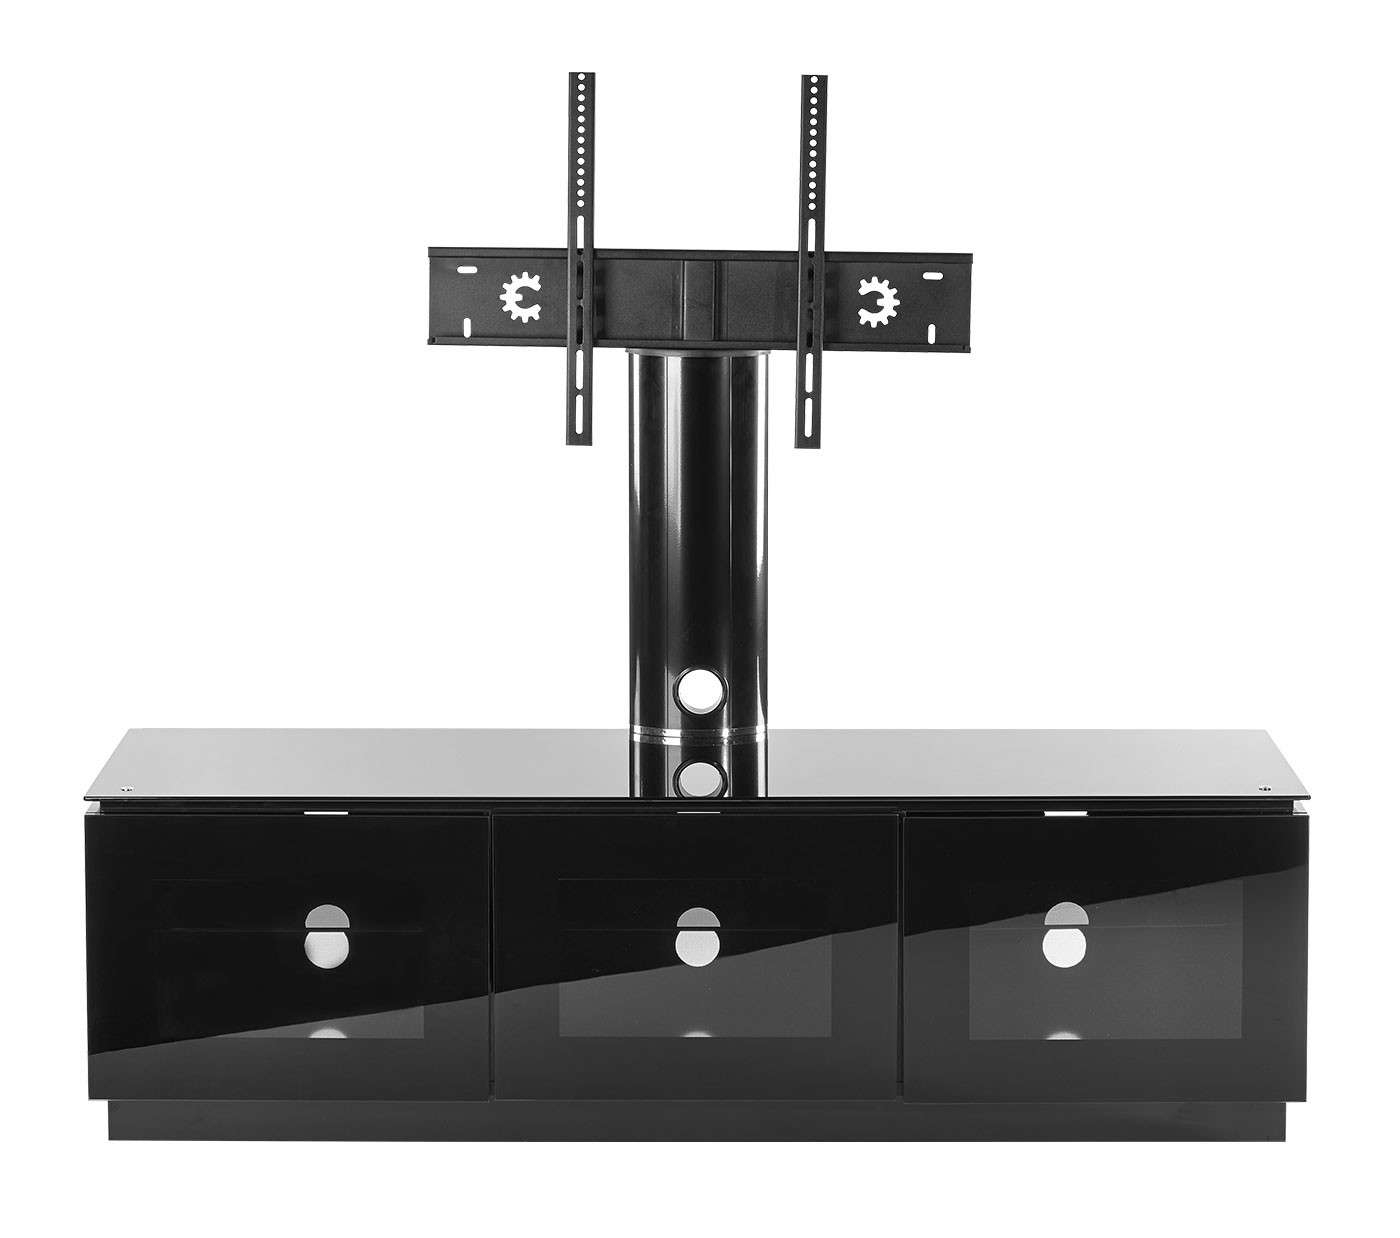 Black Tv Cabinet With Mount For Up To 65 Inch Tv | Mmt D1500 Xarm Throughout Tv Cabinets (View 4 of 20)